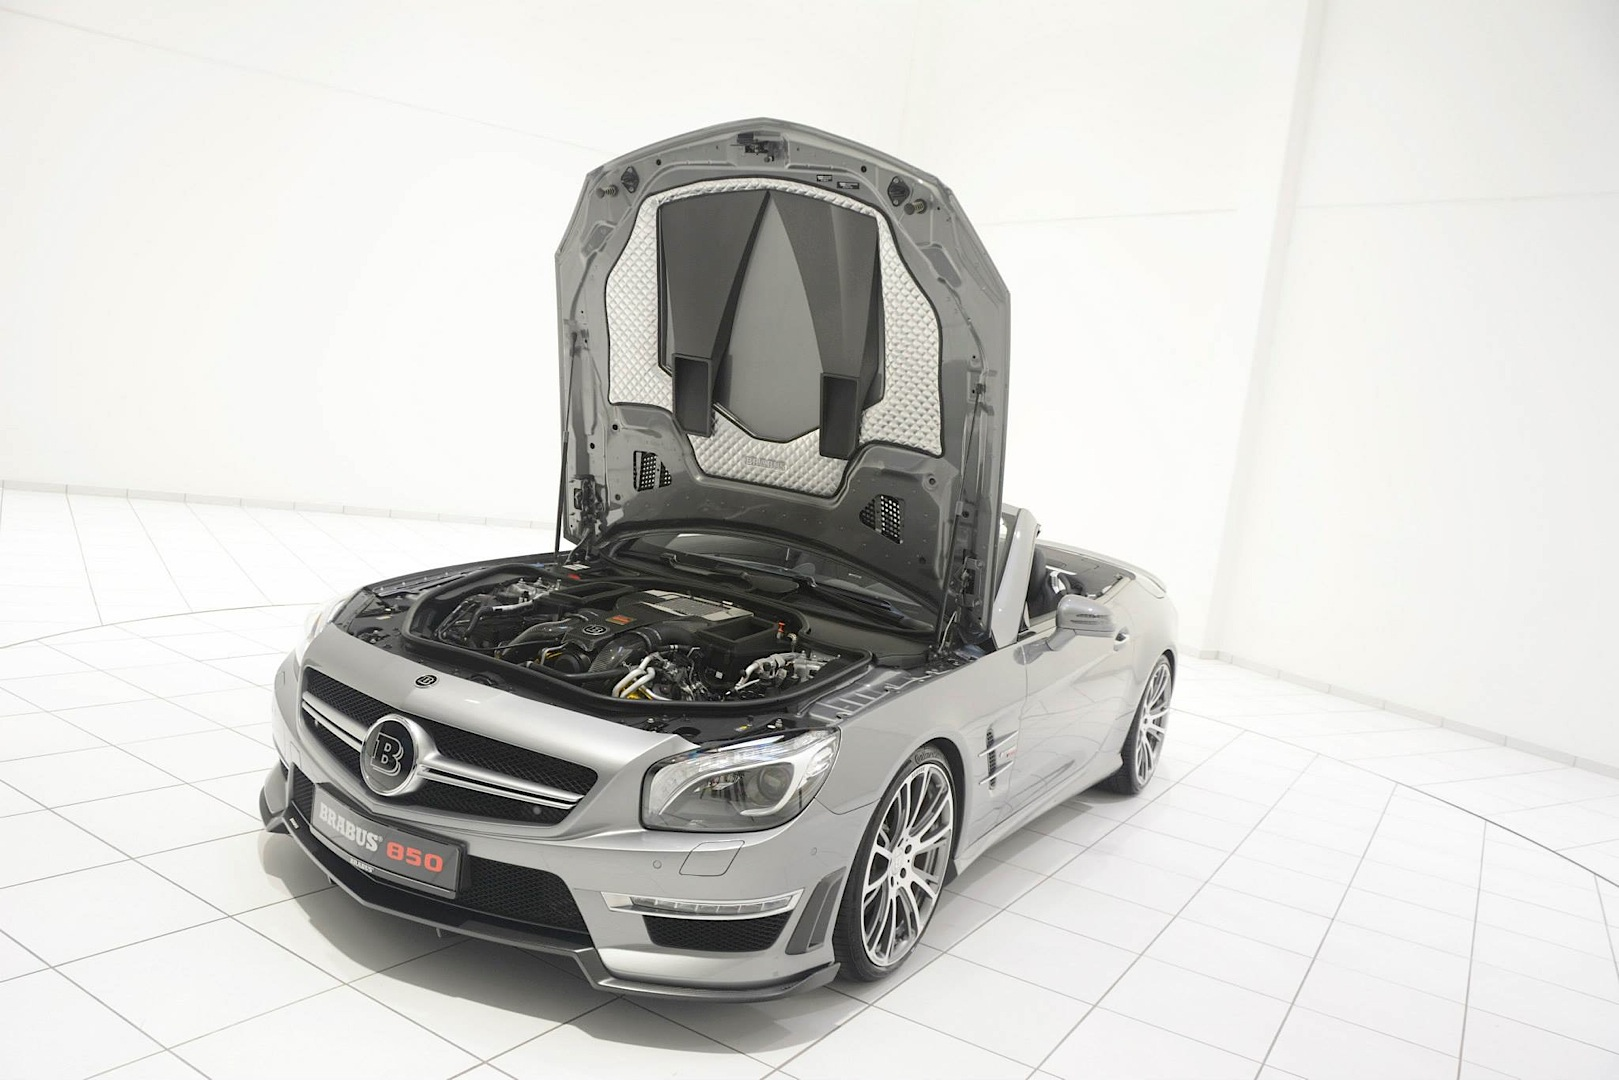 See an SL 63 AMG R231 Do 10 6 Seconds in The Quarter Mile